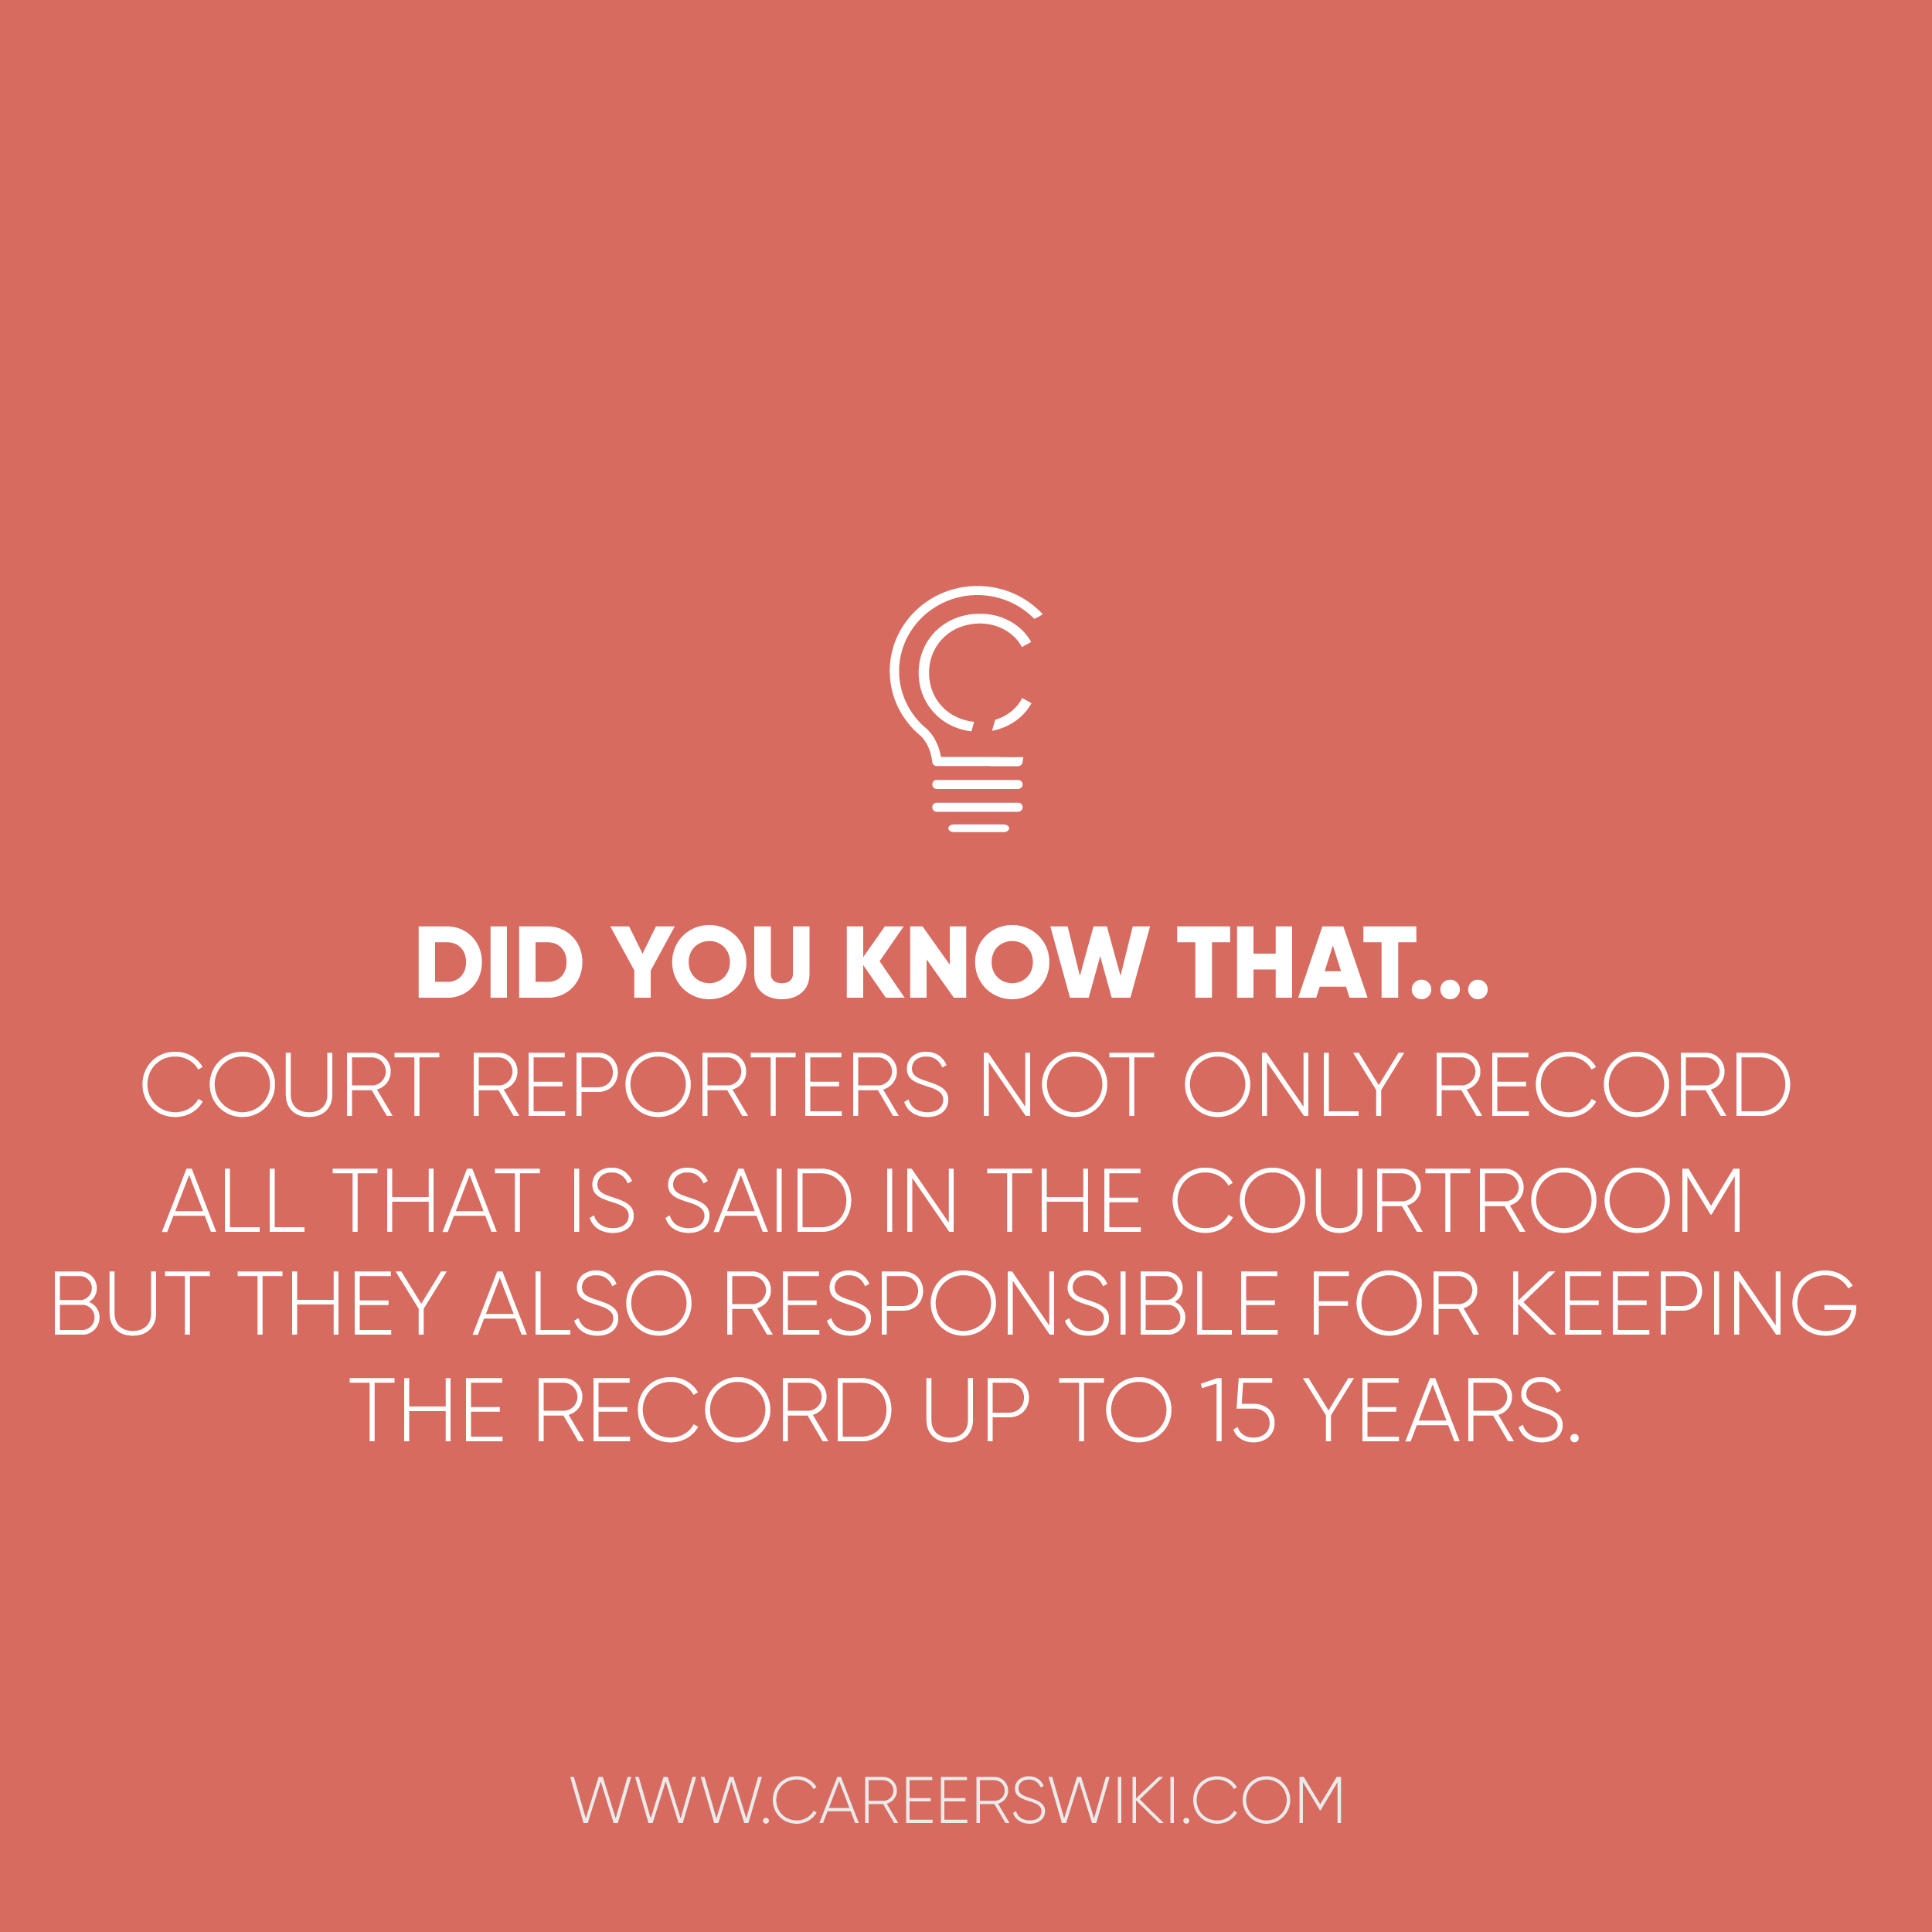 How to a Court Reporter Time management skills